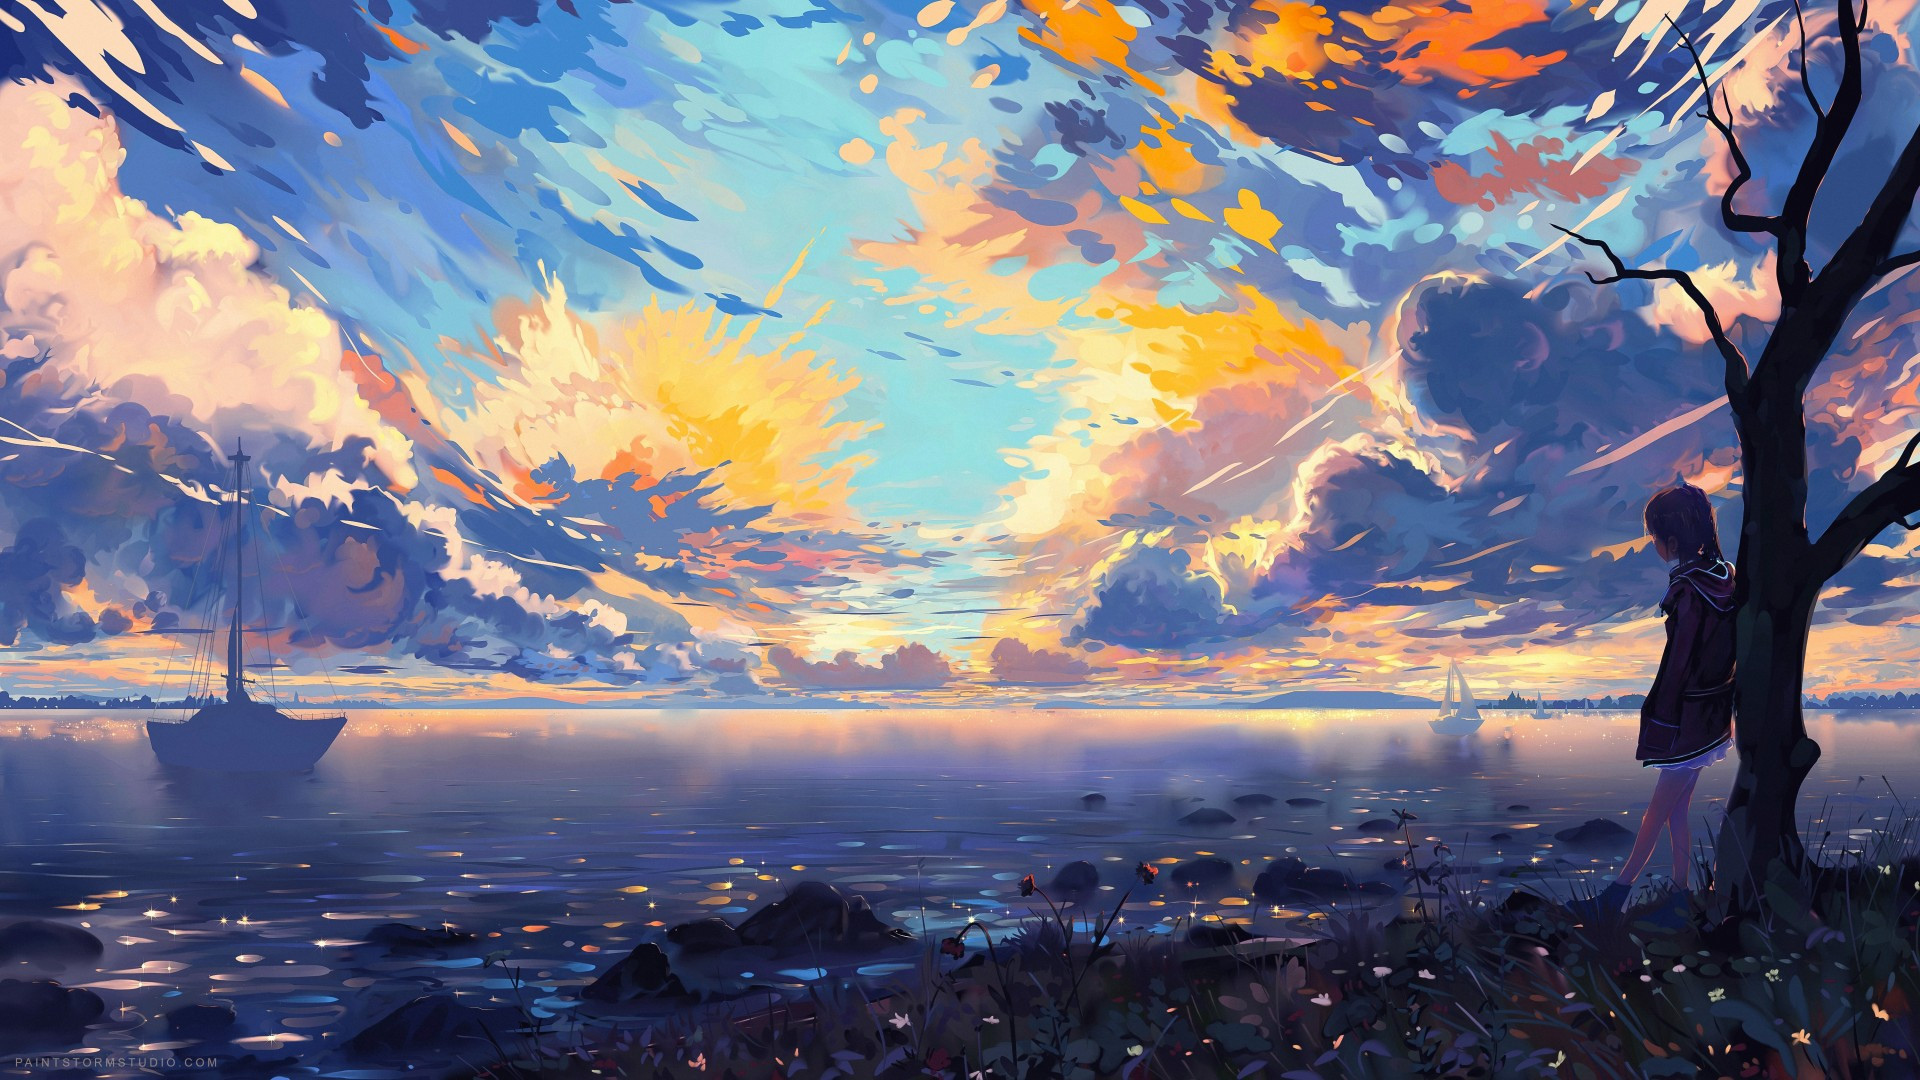 Download 1920x1080 Anime Girl Horizon Landscape Clouds Sunset Wallpapers For Widescreen Wallpapermaiden